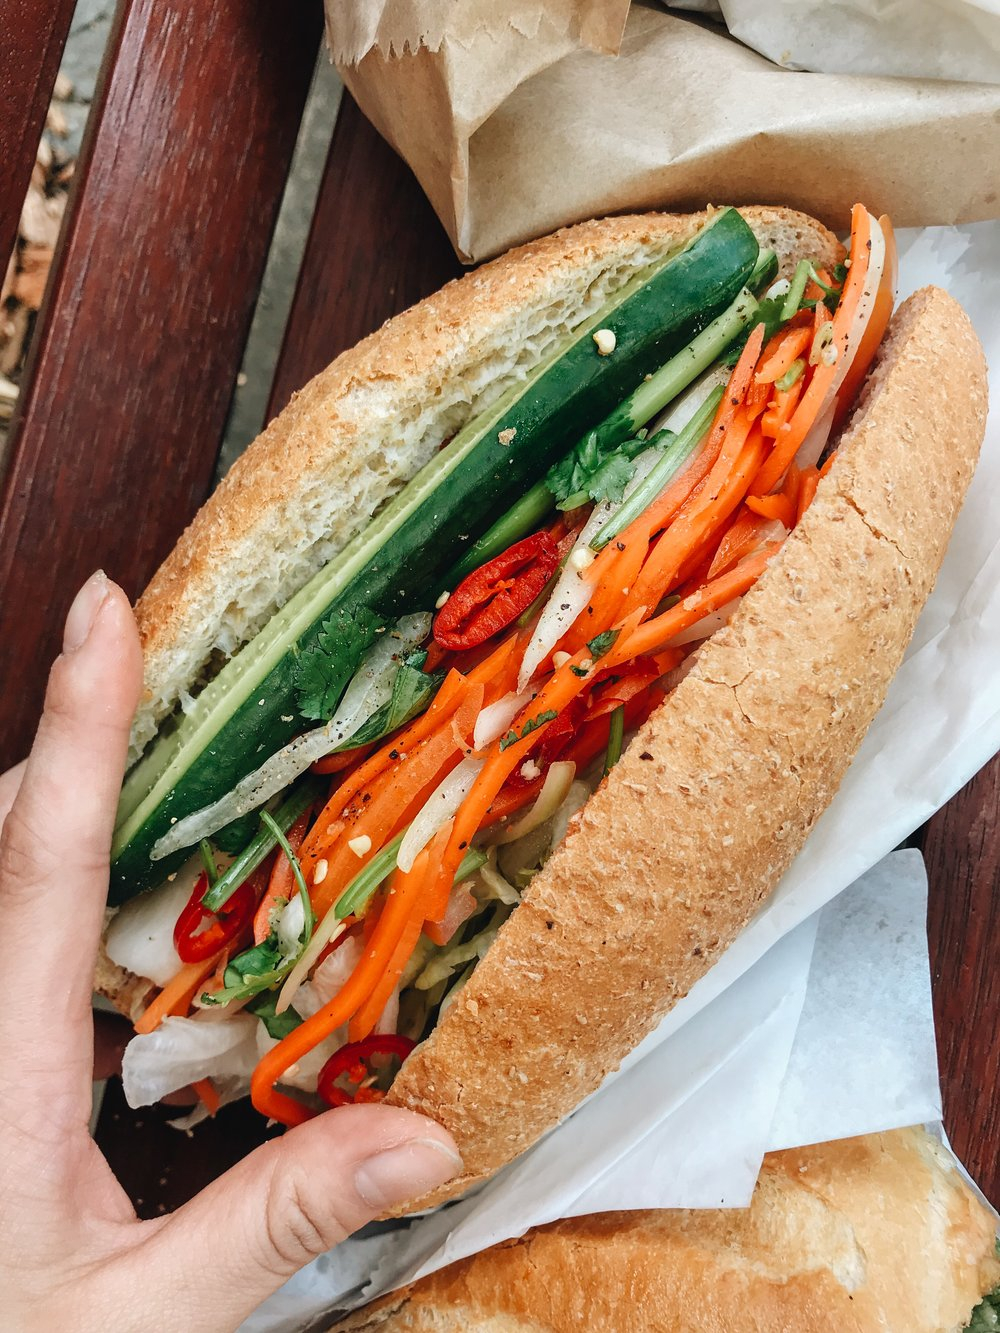 Salad packed Banh Mi from Banh Mi Co, Pyrmont